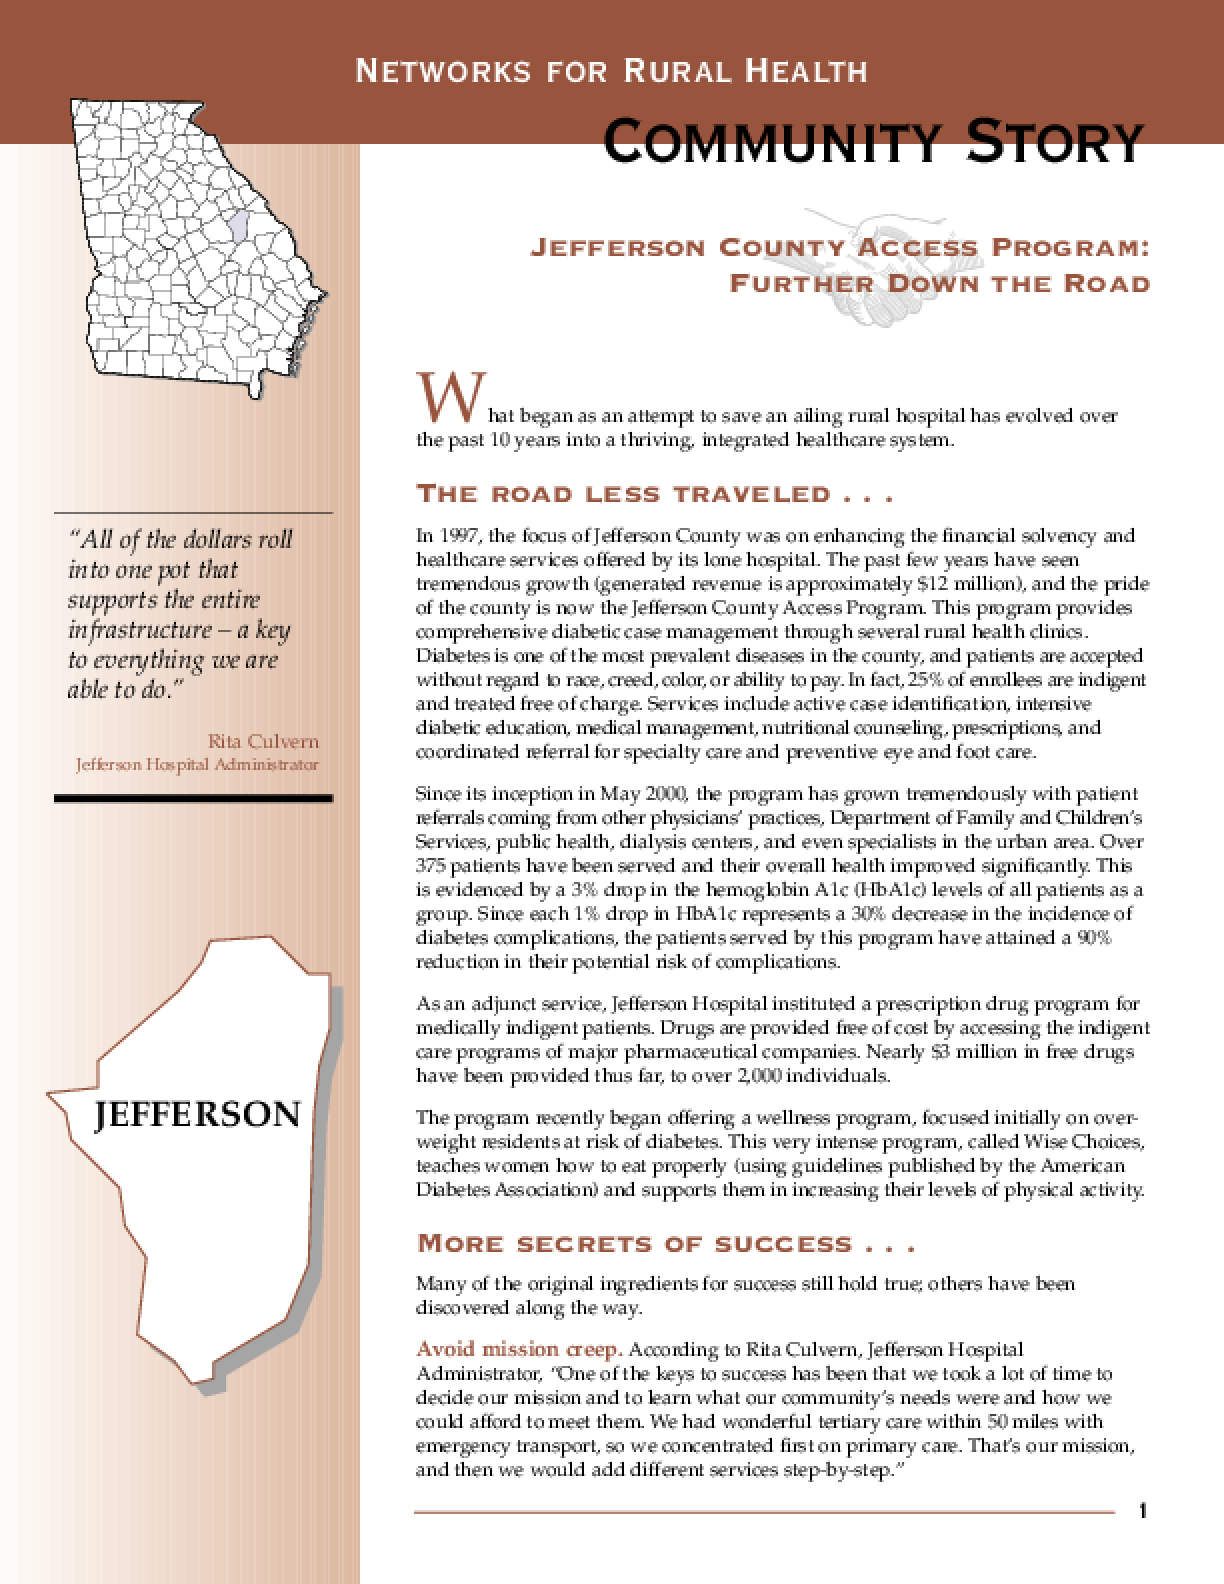 Jefferson County Access Program: Further Down the Road